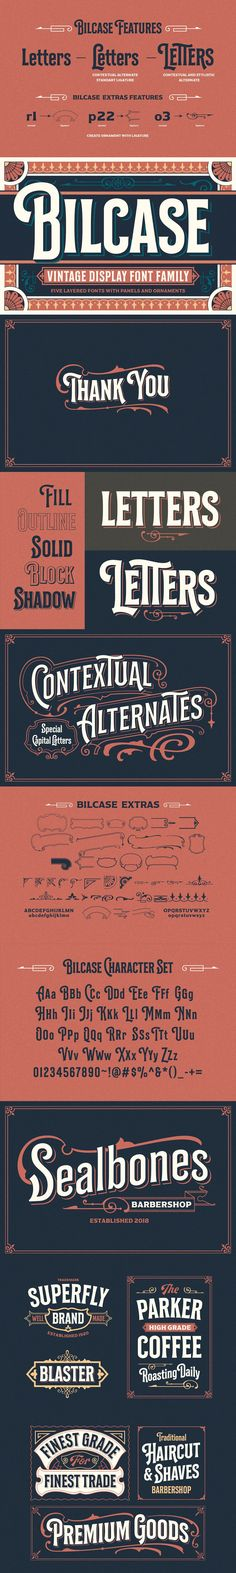 Bilcase font family is layered condensed font family come from vintage logo, labels, packages, and signage. Condensed Font, Create Labels, Freelance Graphic Design, Adobe Indesign, Block Lettering, Font Family, Tattoo Fonts, Letterhead